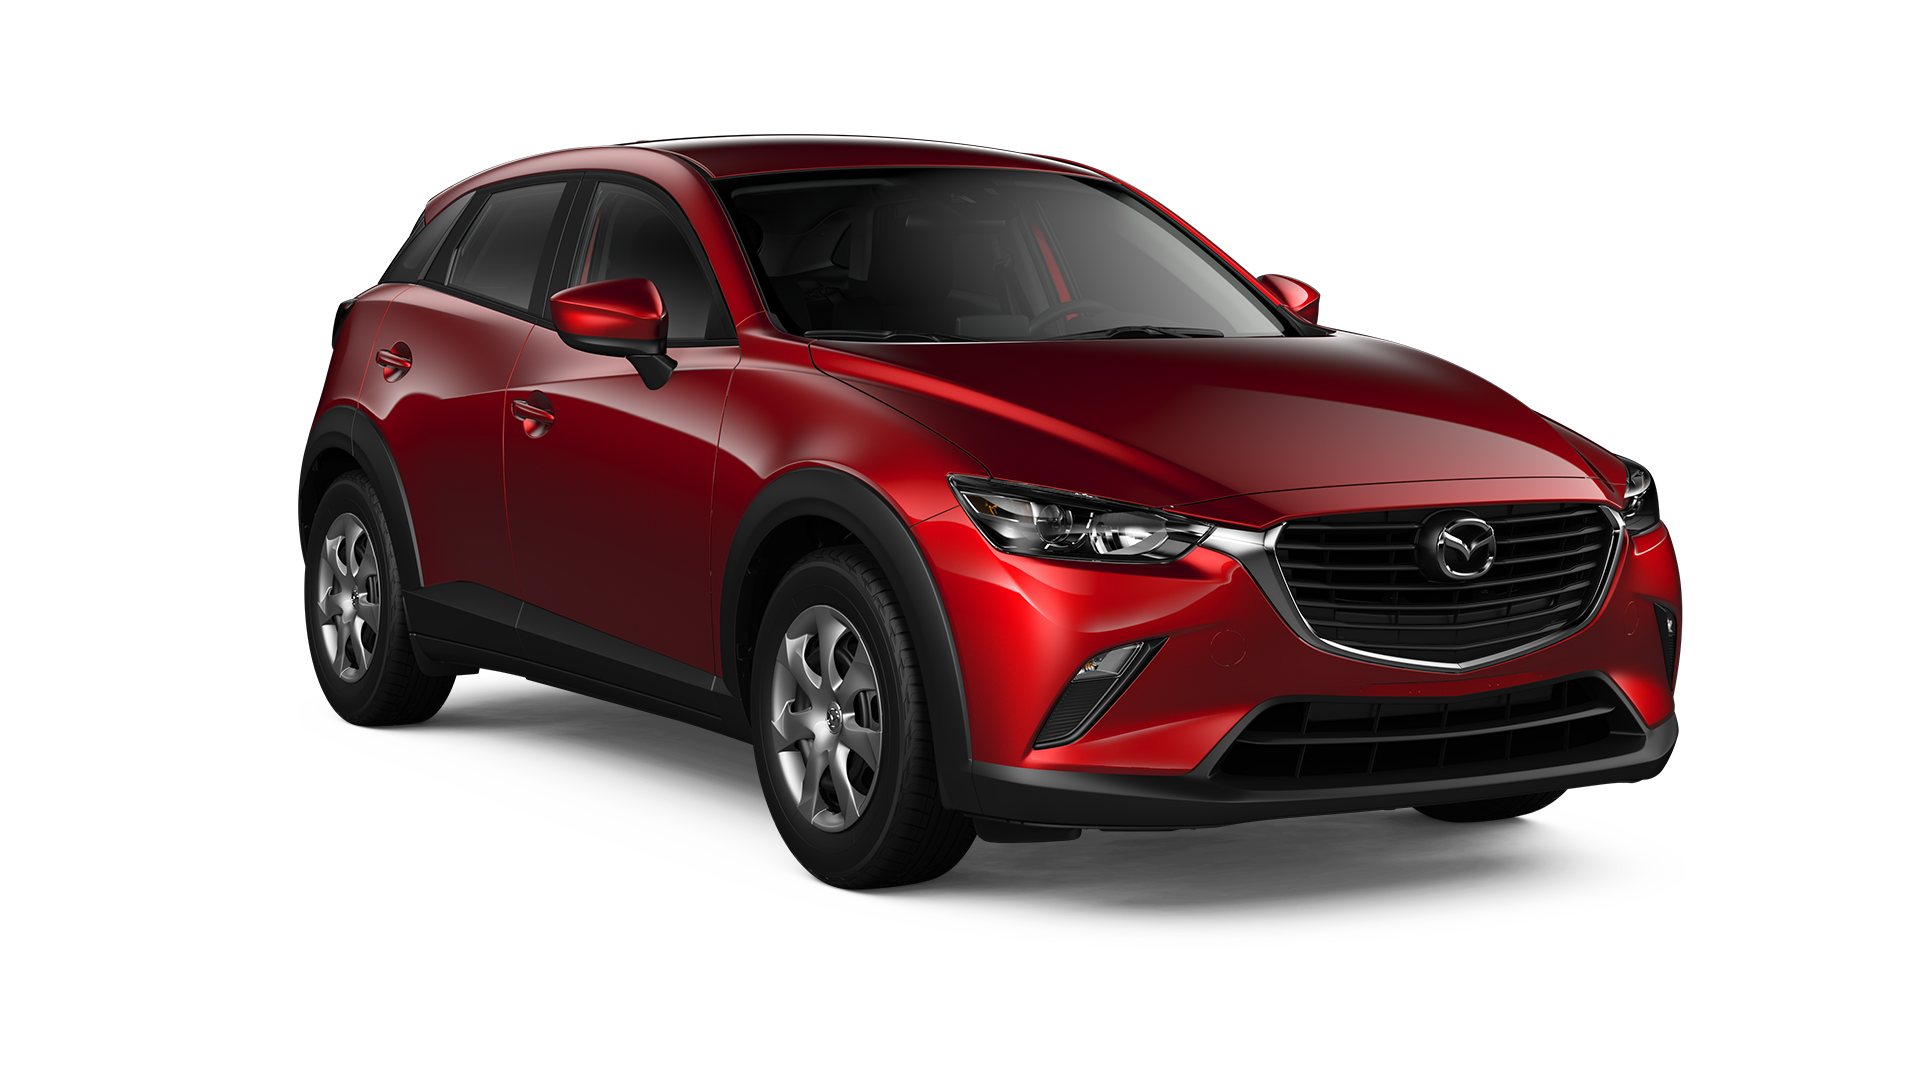 Mazda Build And Price Canada >> 2019 CX-3 | Subcompact Crossover SUV | Mazda Canada